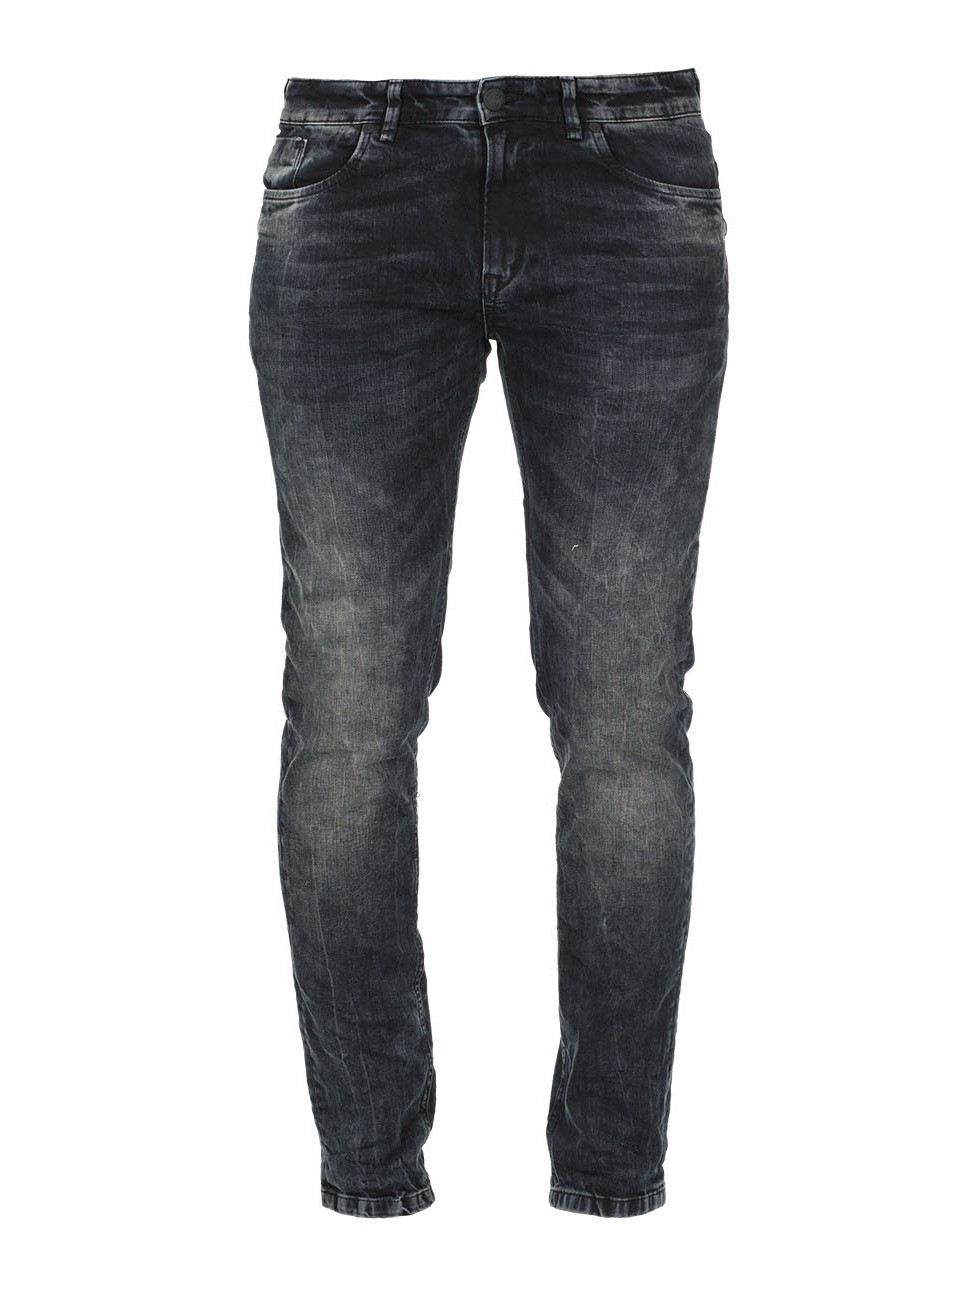 M.O.D. Herren Jeans Marcel - Super Slim Fit - Blau - Brown-Blue